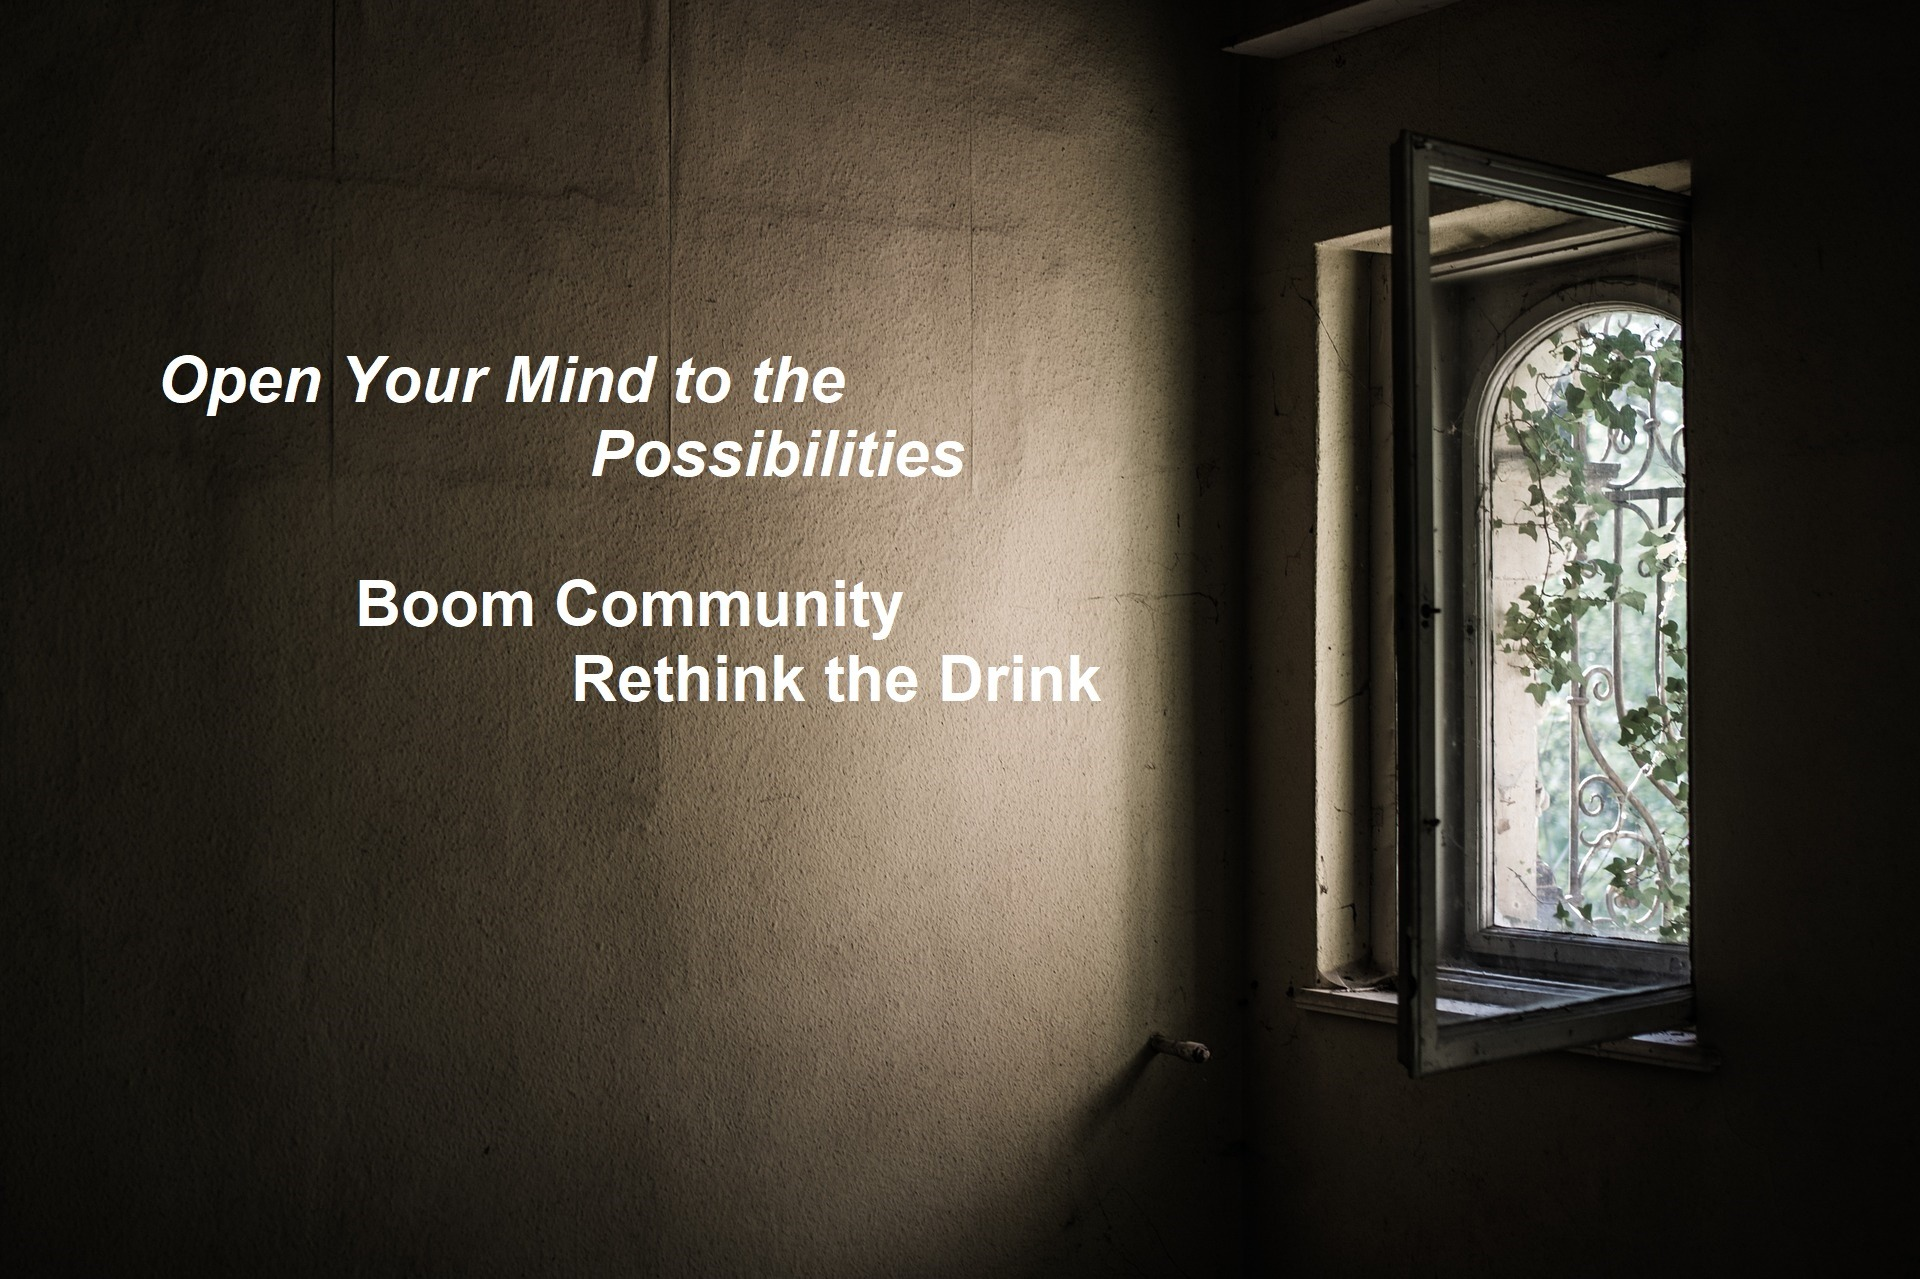 Open Your Mind to the Possibilities Boom Community Rethink the Drink window to garden